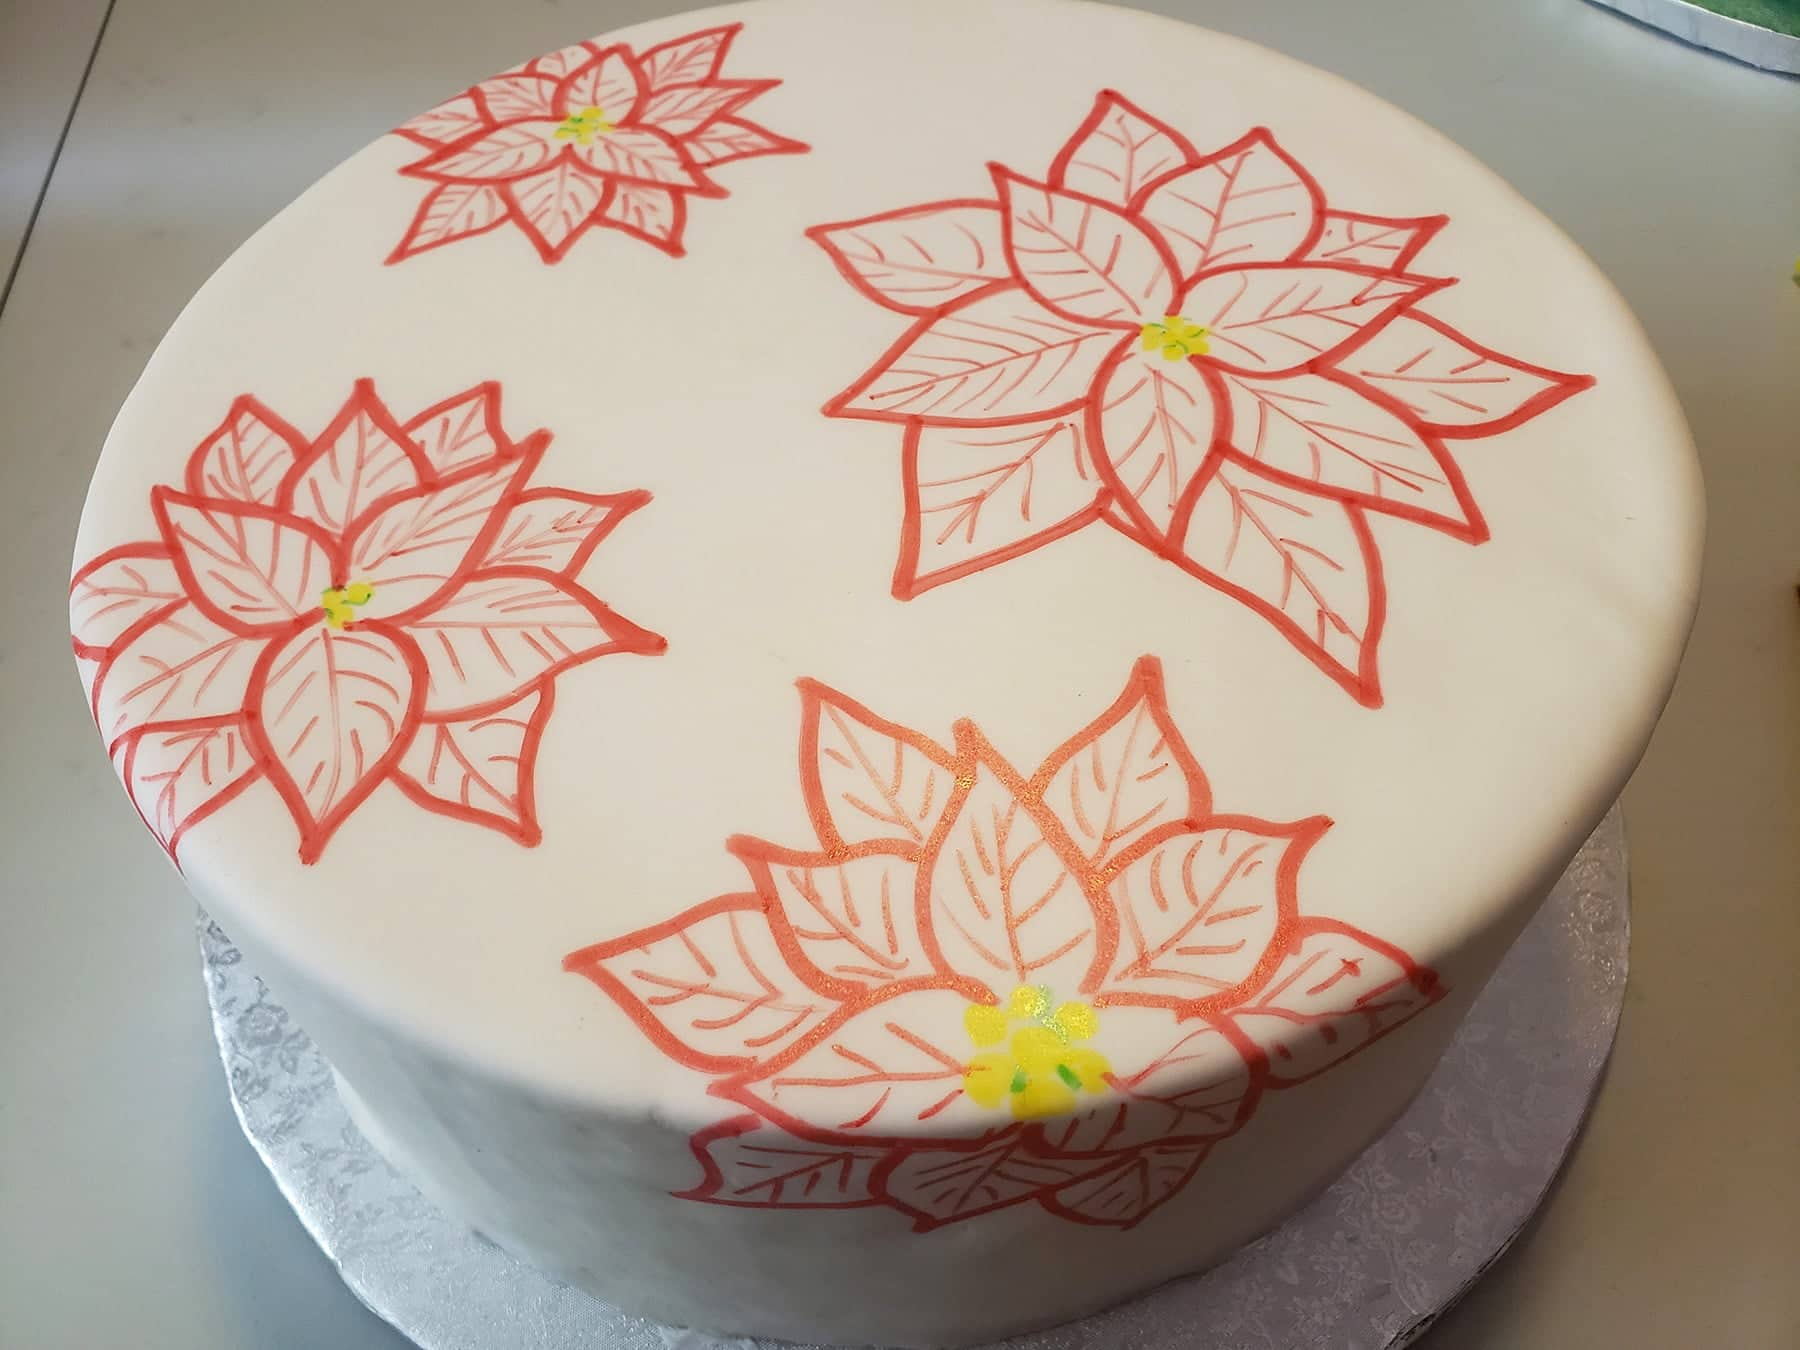 A large round cake covered in smooth white fondant hasred poinsettias drawn all over it.